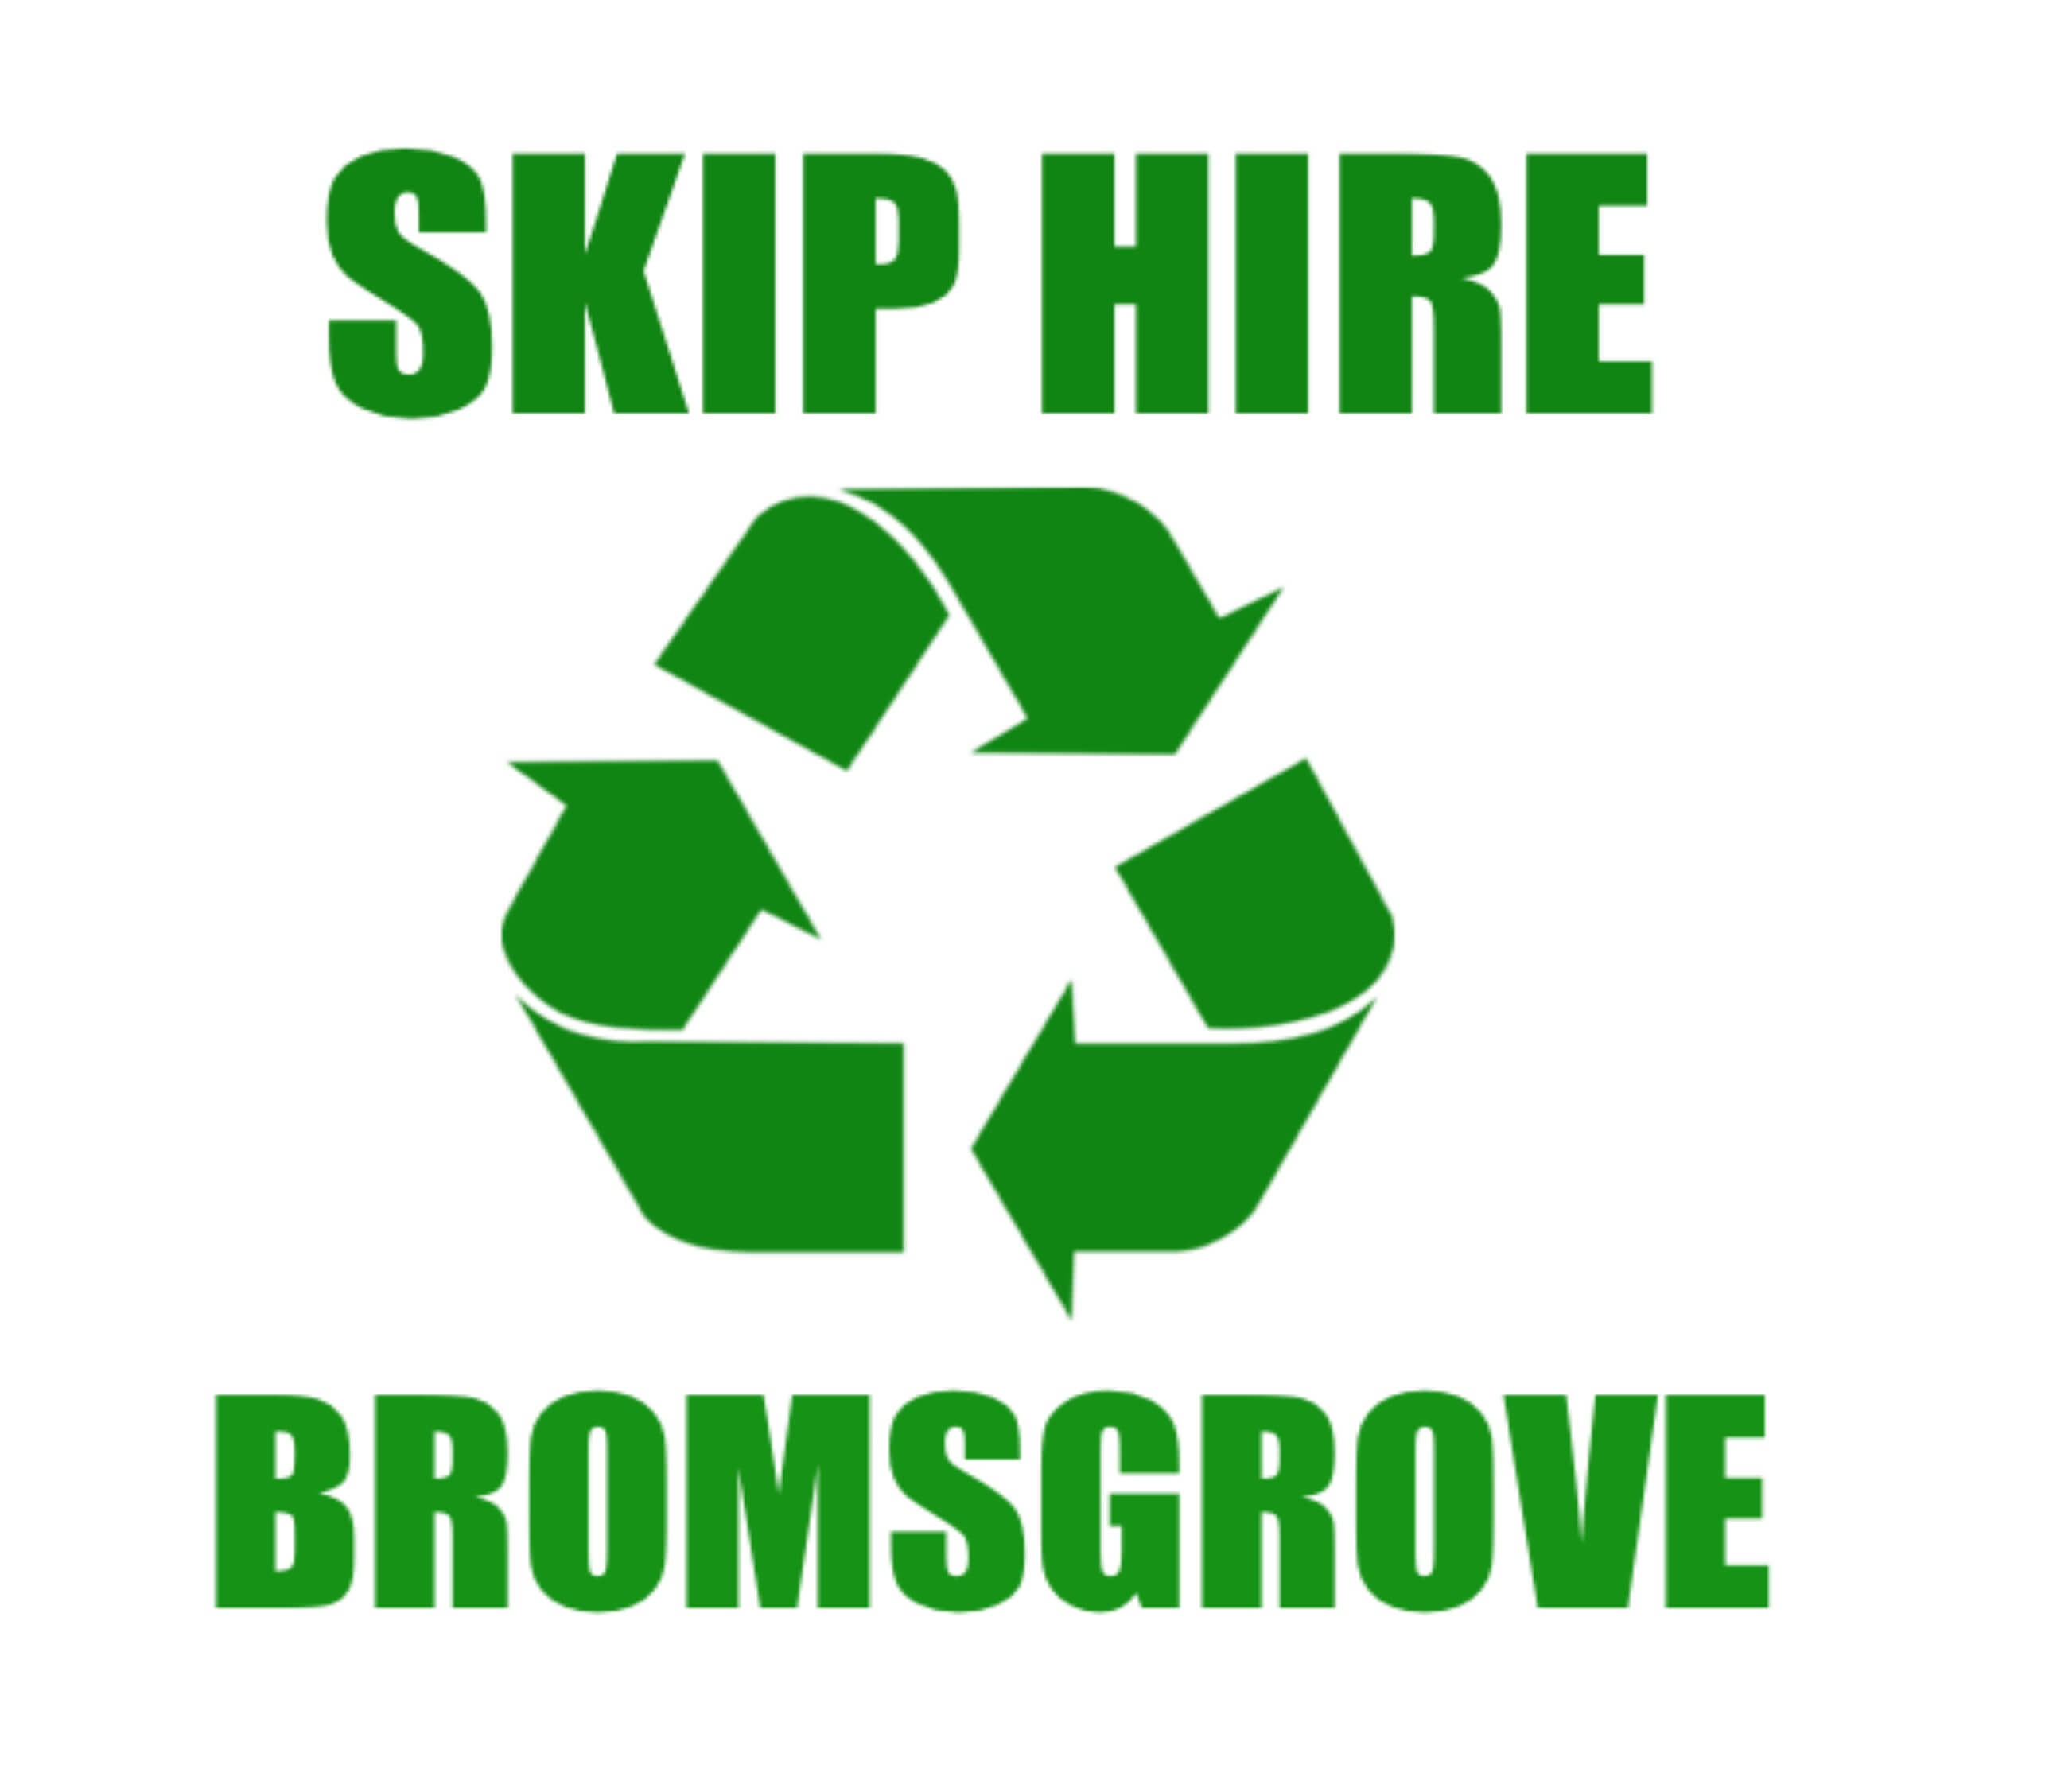 our skip hire company logo